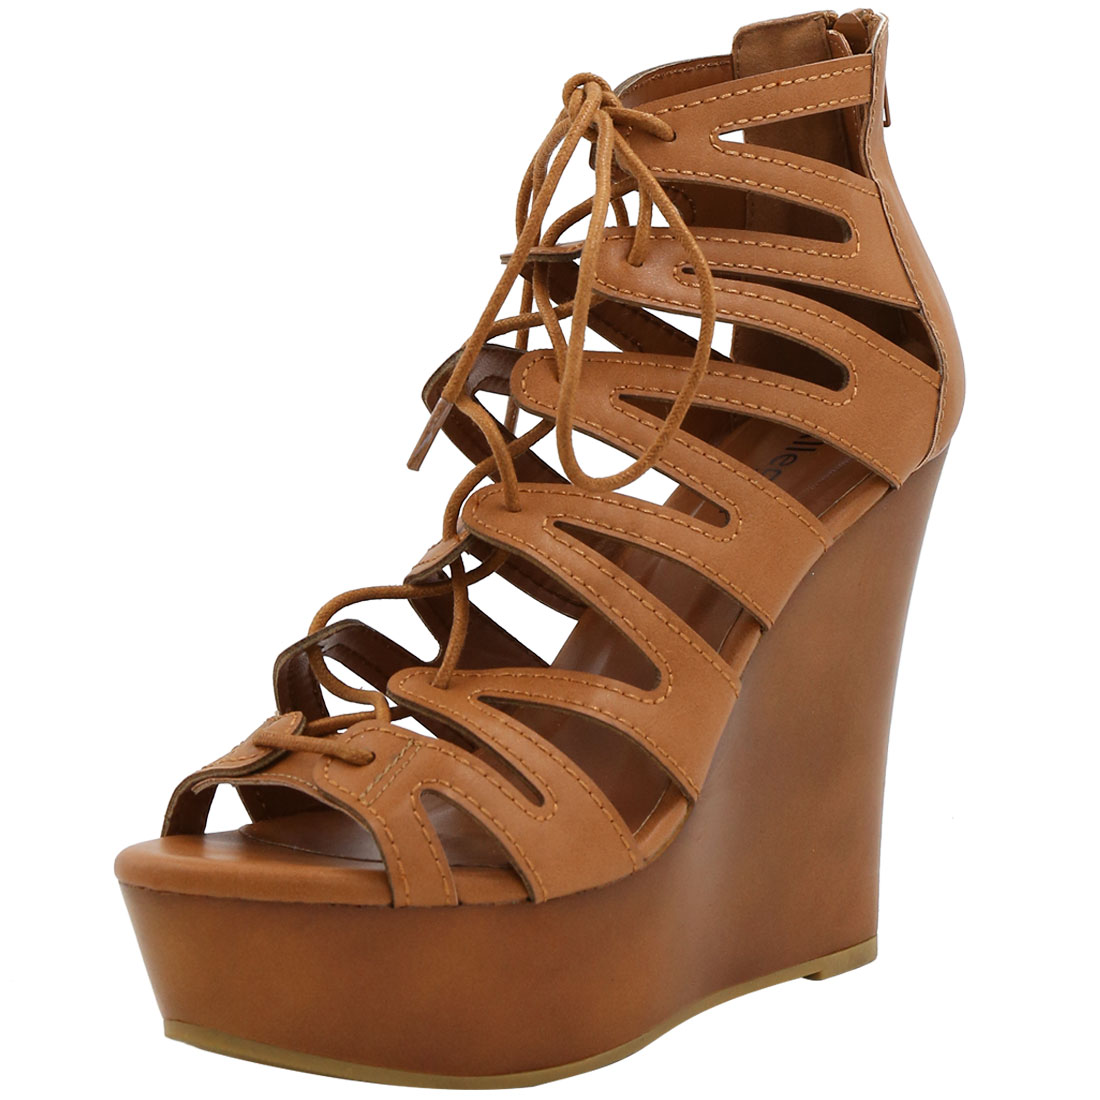 Woman Open Toe Lace-Up Cutout Platform Wedge Sandals Brown US 7